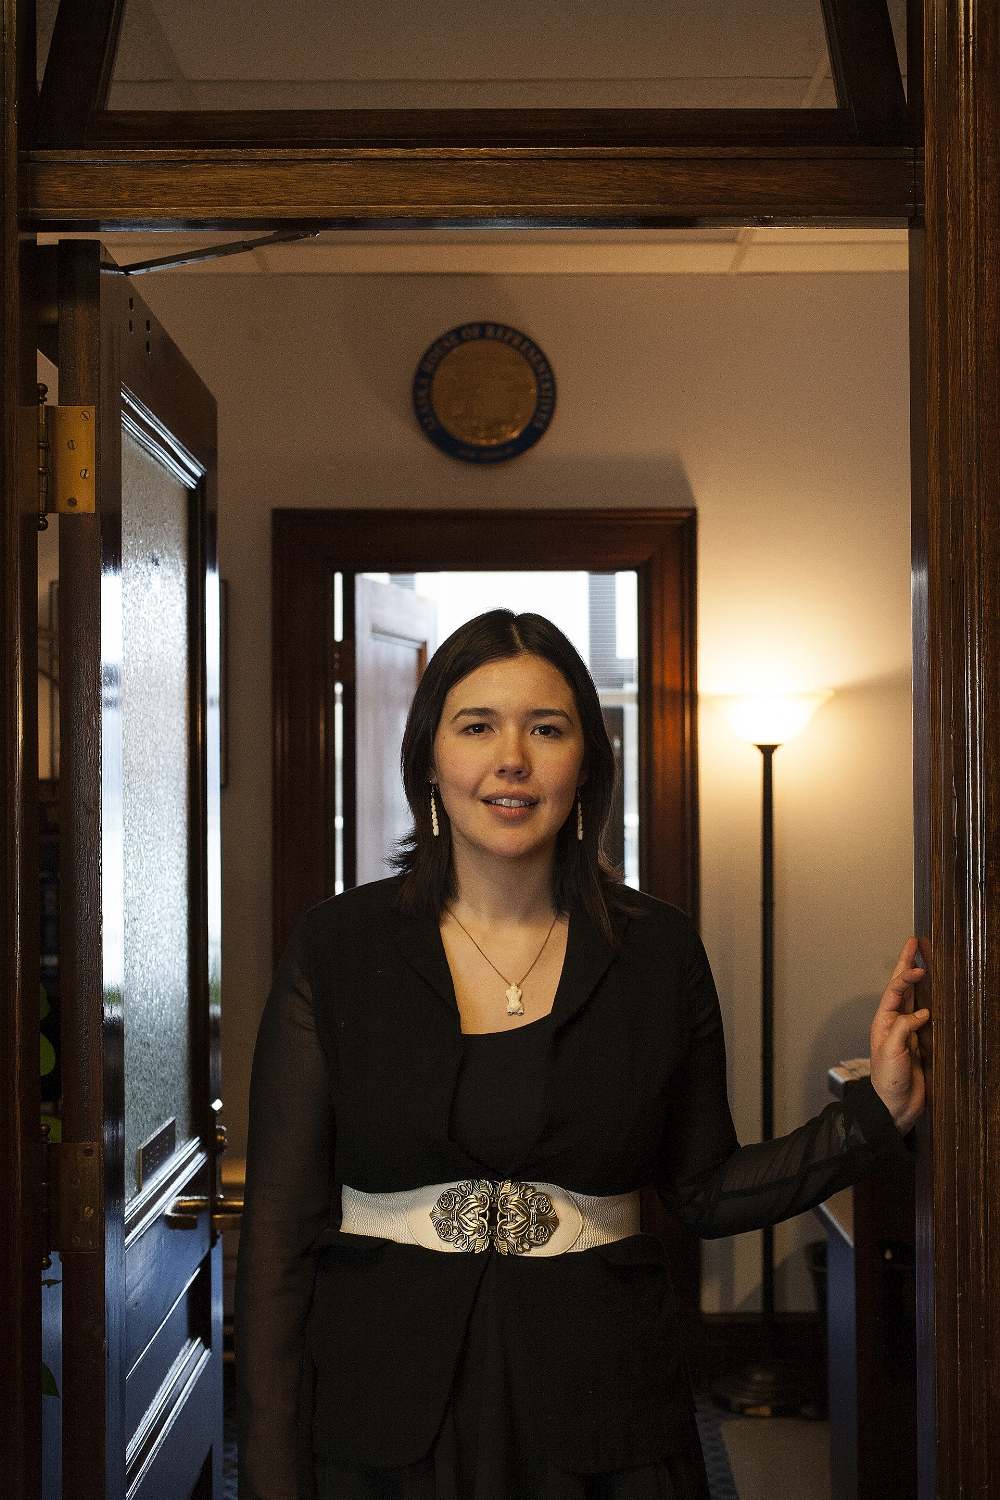 Mary Sherbick, First Alaskans Institute Public Policy Fellow